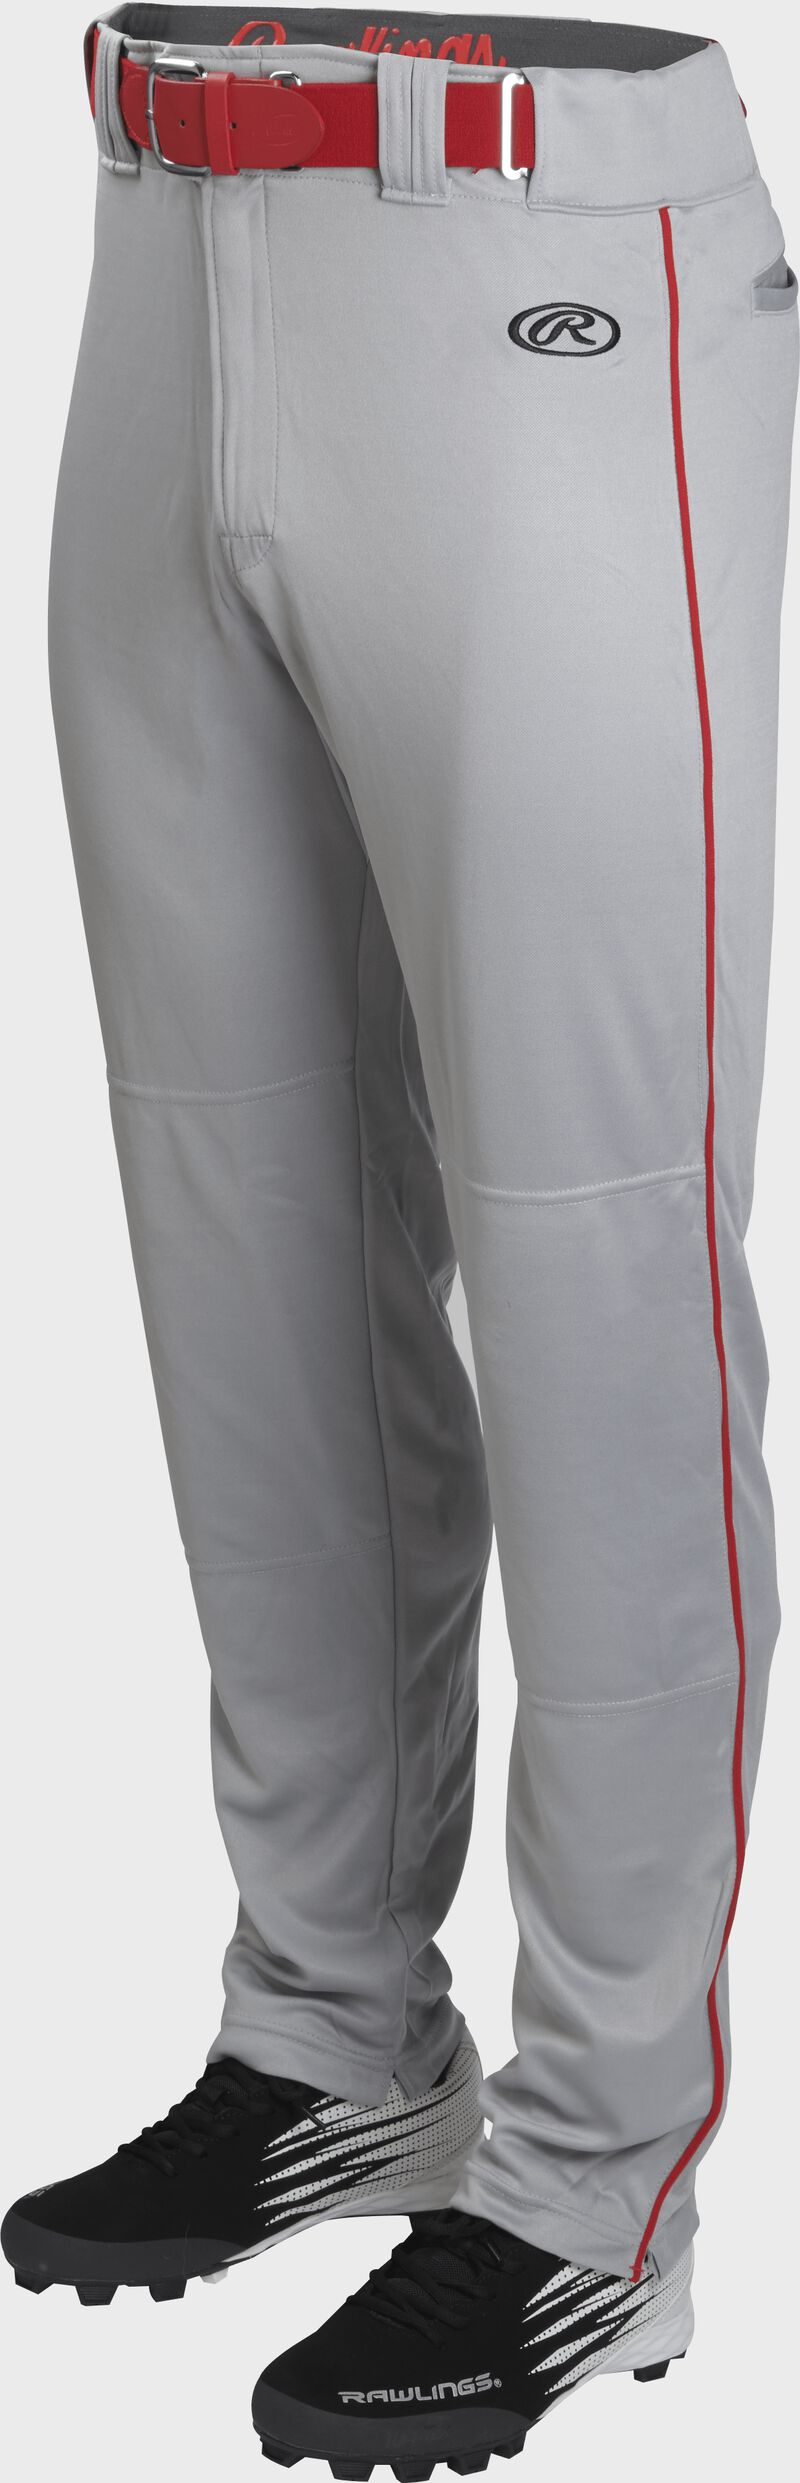 Front of Rawlings Blue Gray/Scarlet Adult Launch Piped Semi-Relaxed Baseball Pant - SKU #LNCHSRP-BG/S